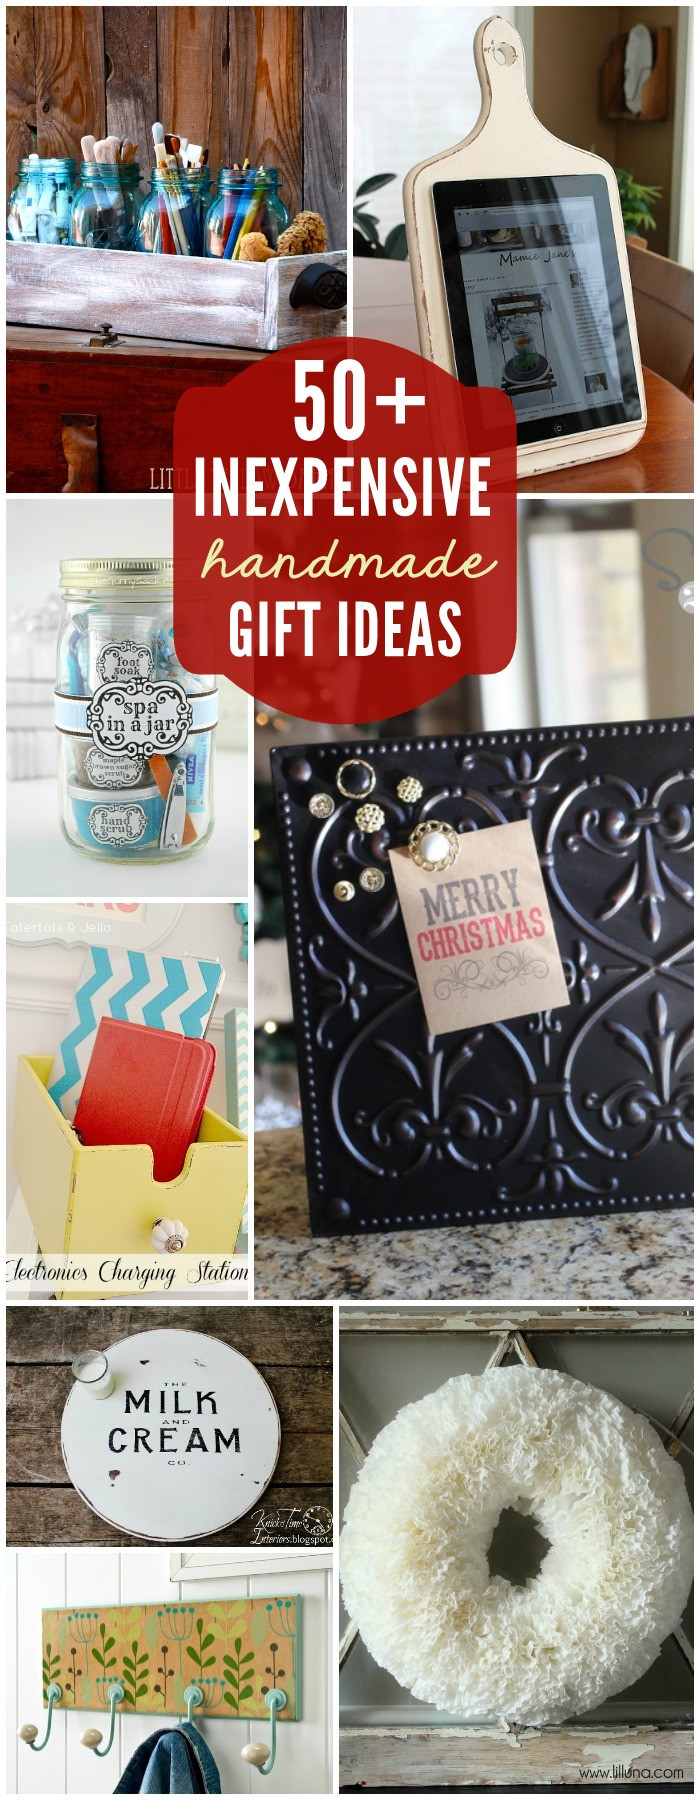 Best ideas about DIY Gift For Christmas . Save or Pin Easy DIY Gift Ideas Now.